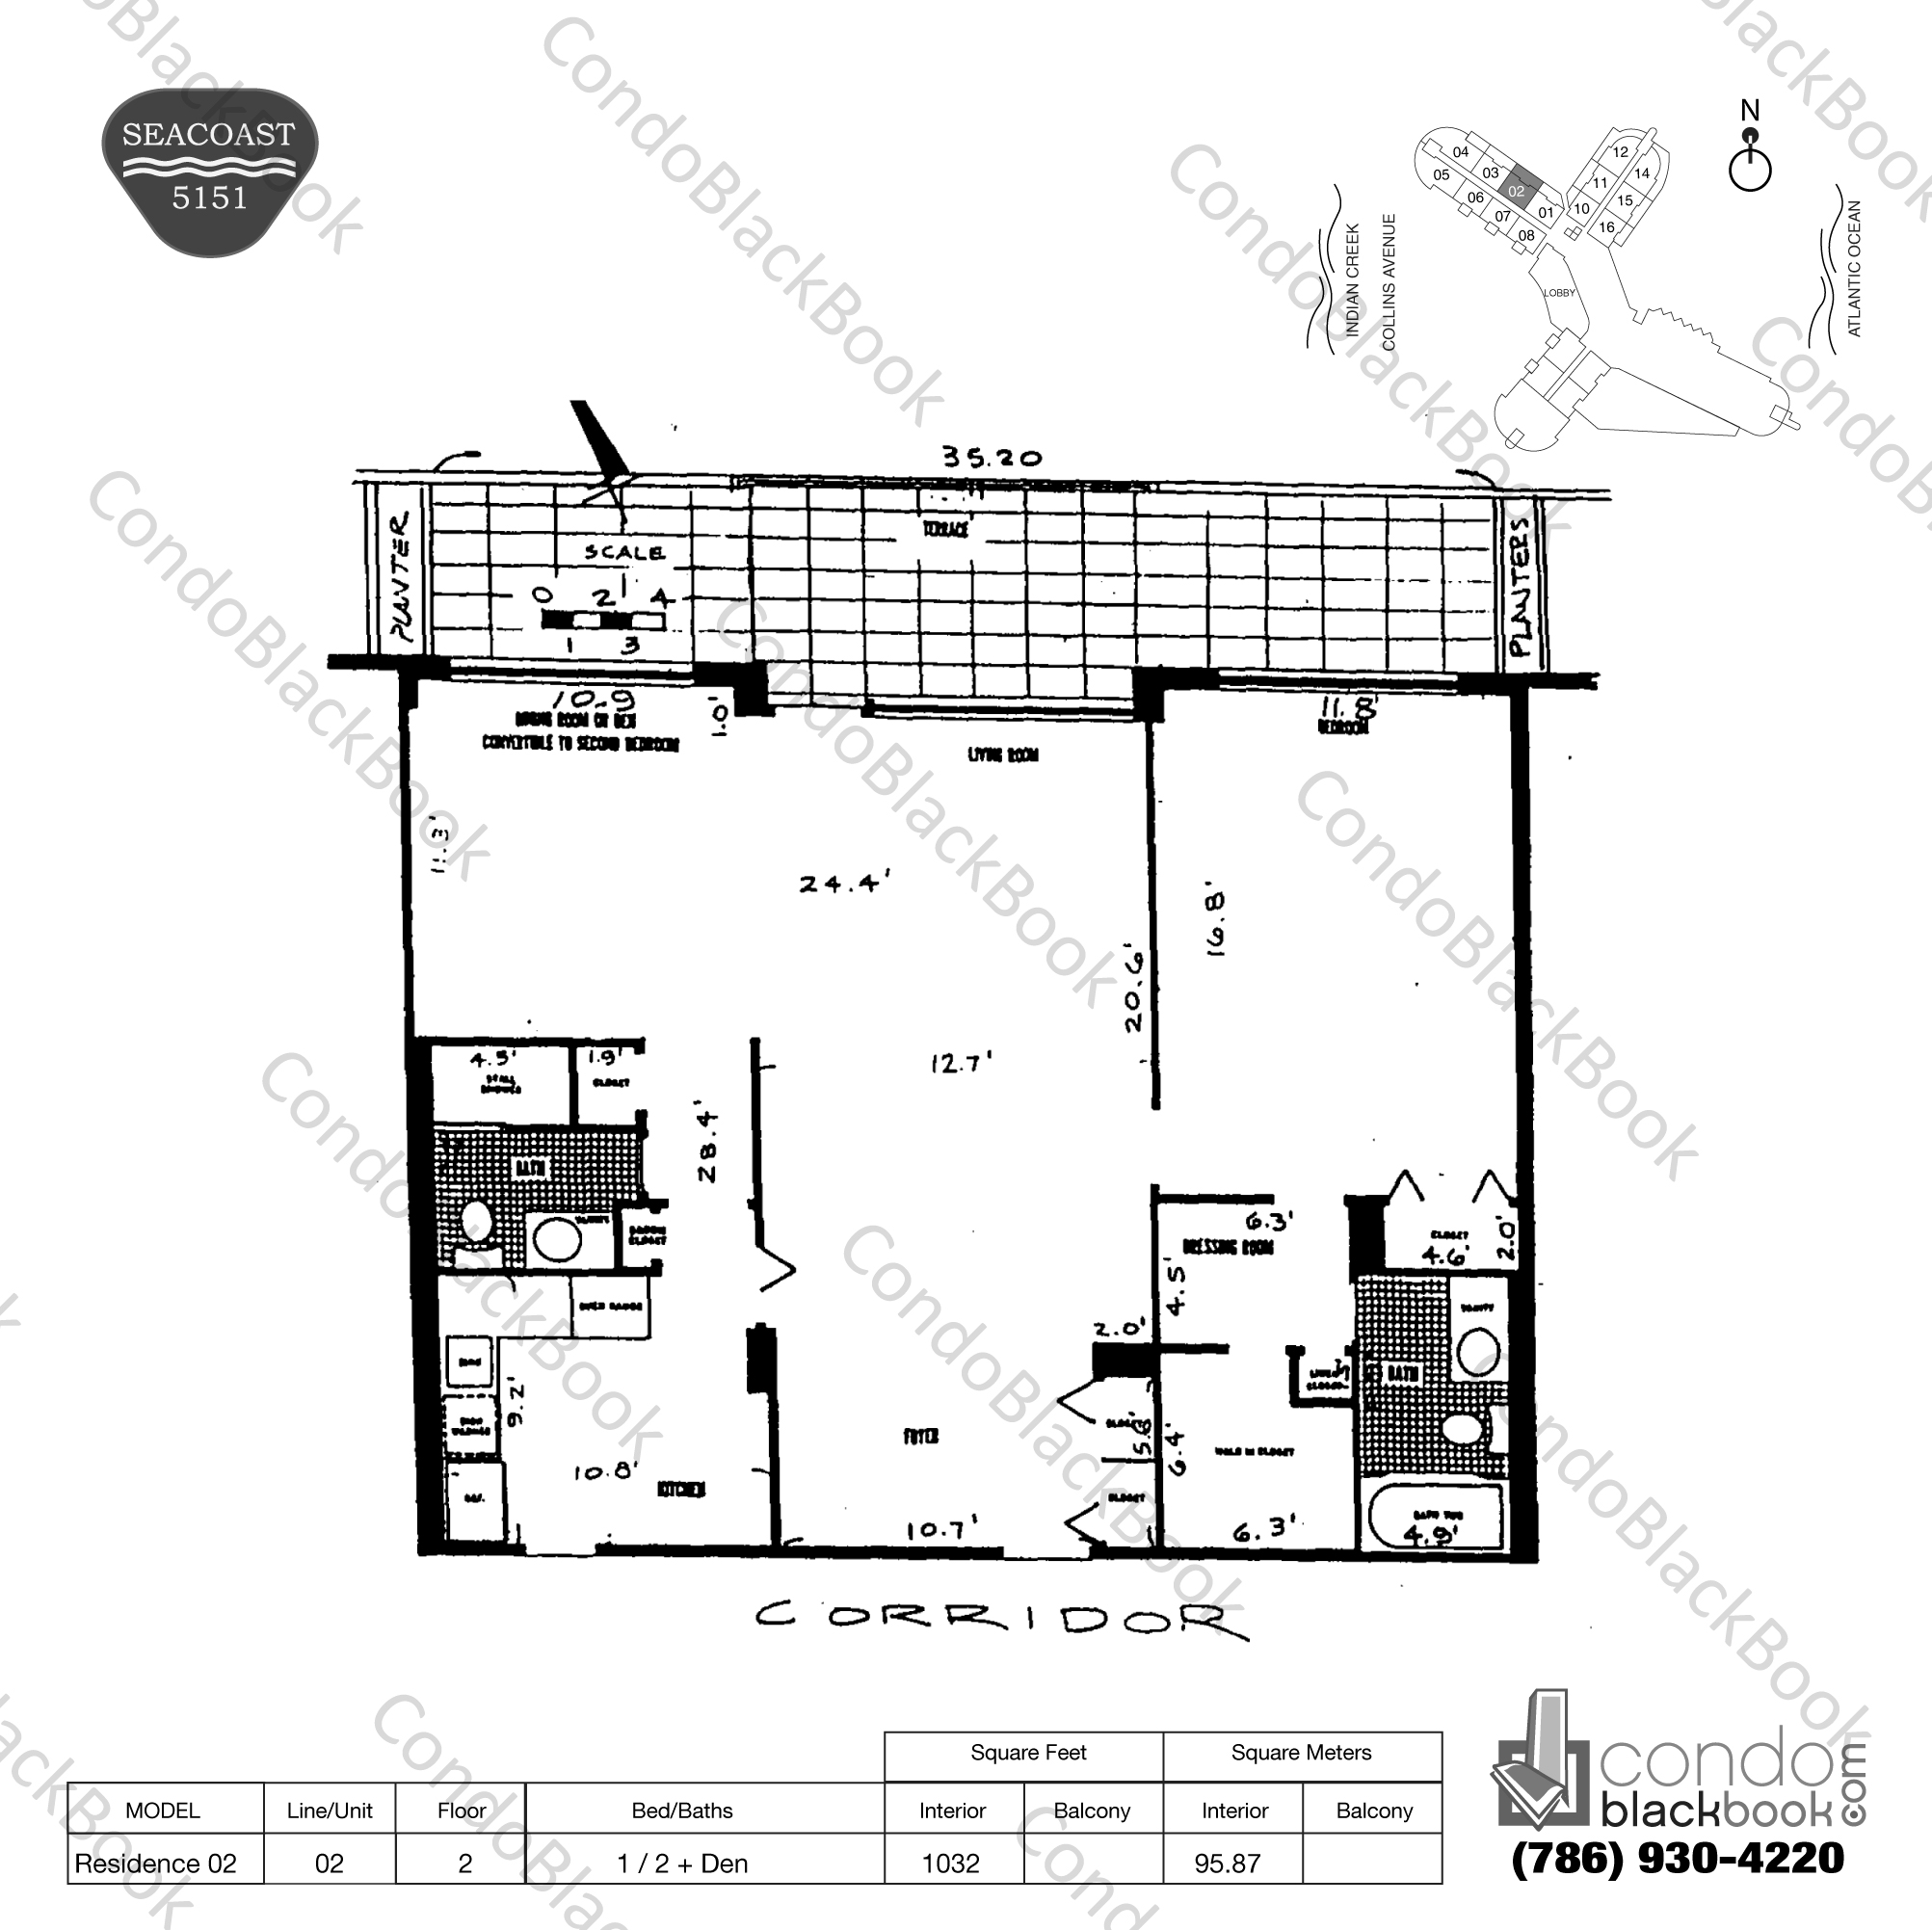 Floor plan for Seacoast 5151 Mid-Beach Miami Beach, model Residence 02, line 02, 1 / 2 + Den bedrooms, 1032 sq ft